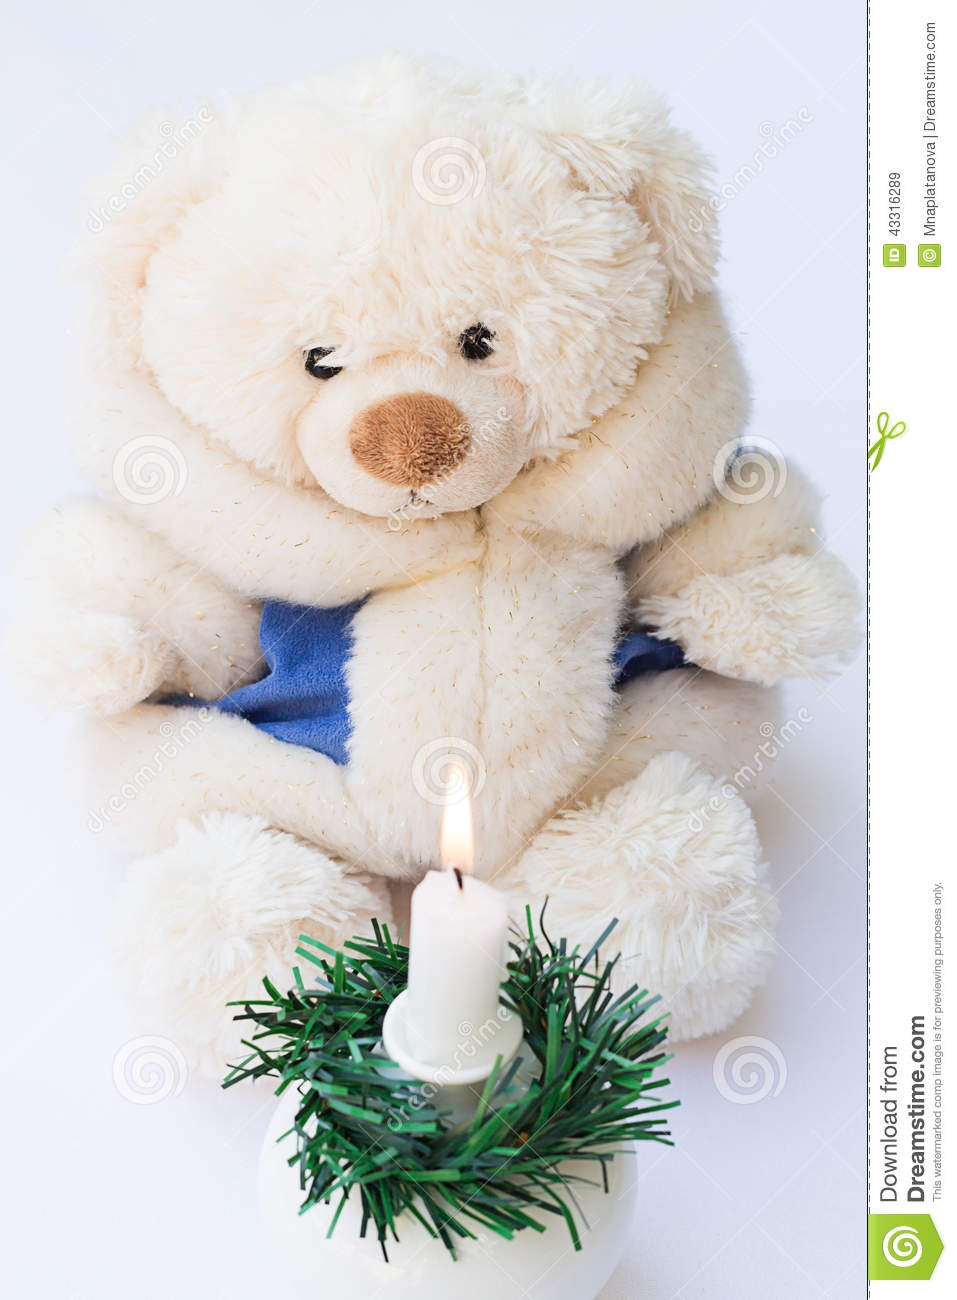 white teddy bear in a winter coat and a burning candle. Black Bedroom Furniture Sets. Home Design Ideas